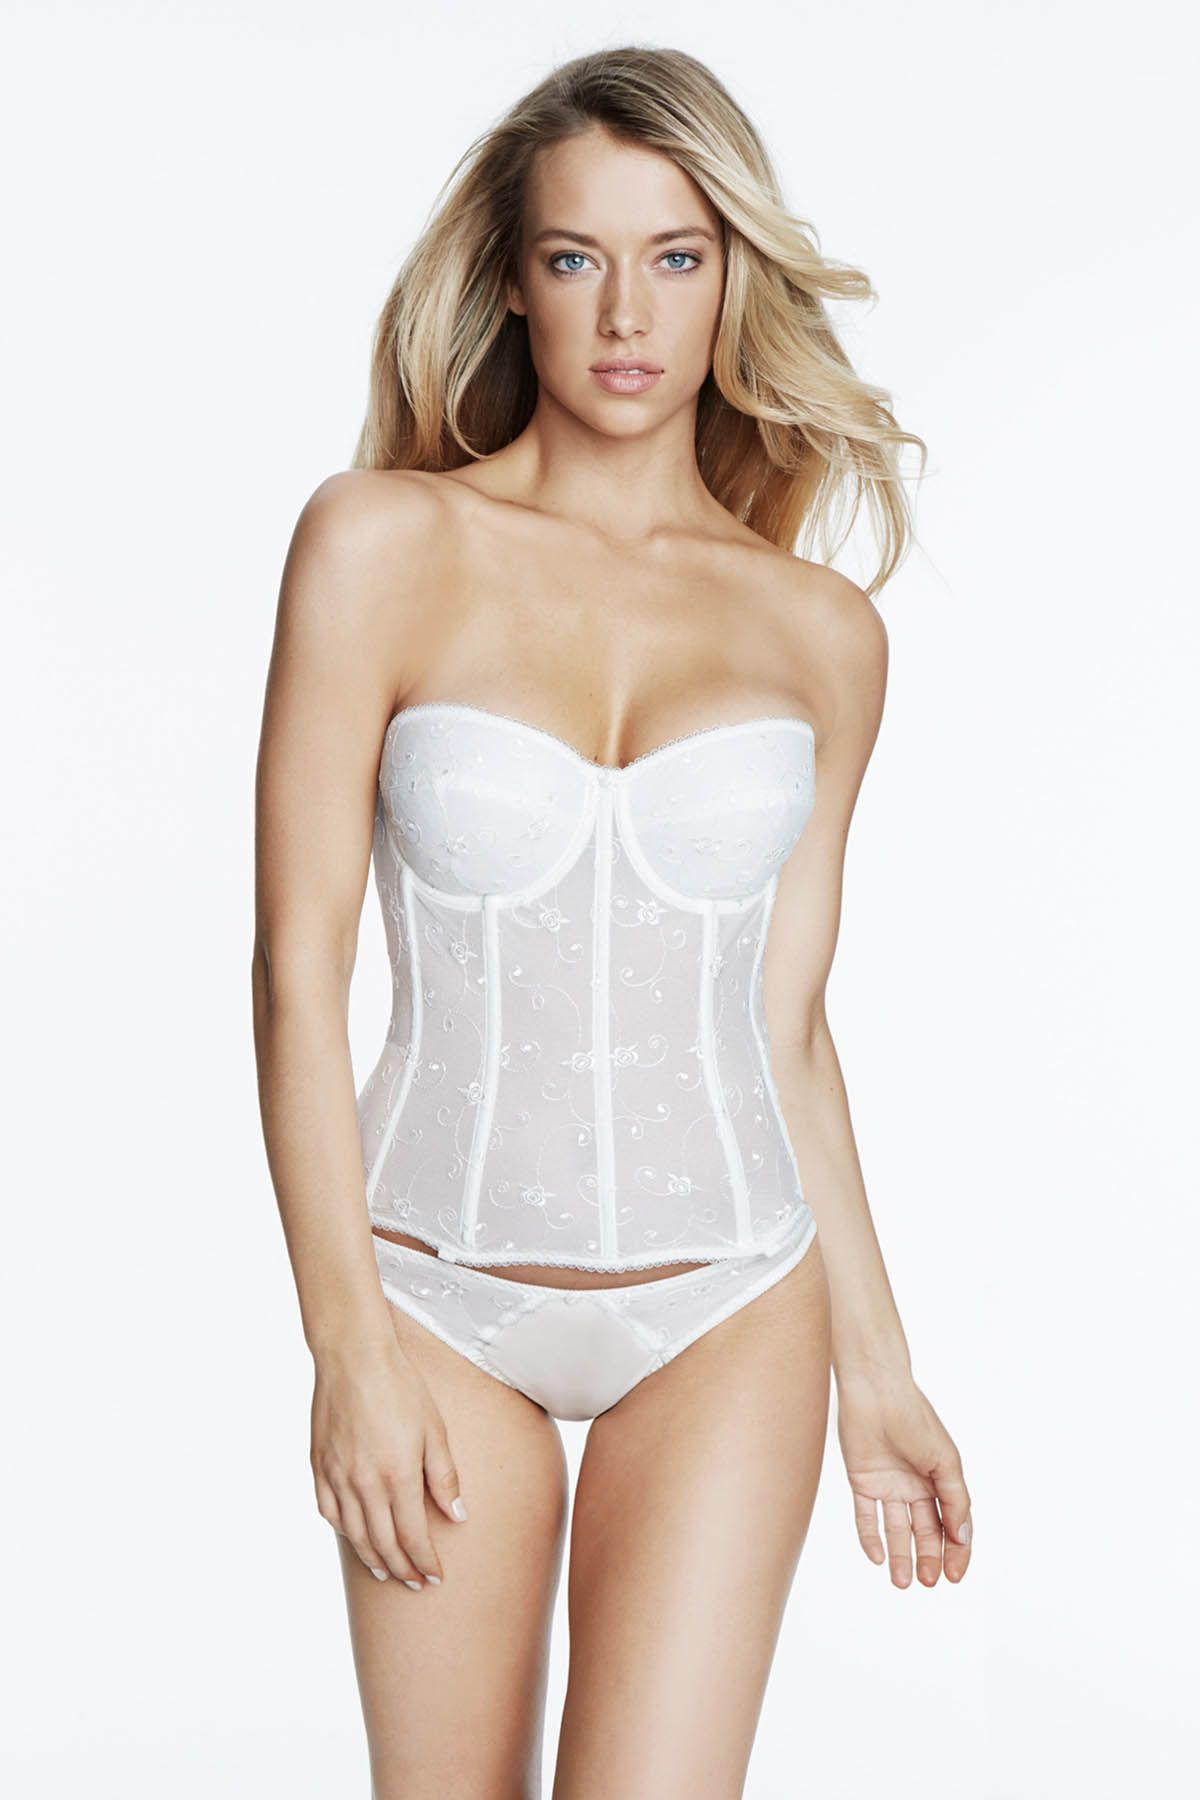 Wedding Dress Corset Bra Dresses For Reception Check More At Http